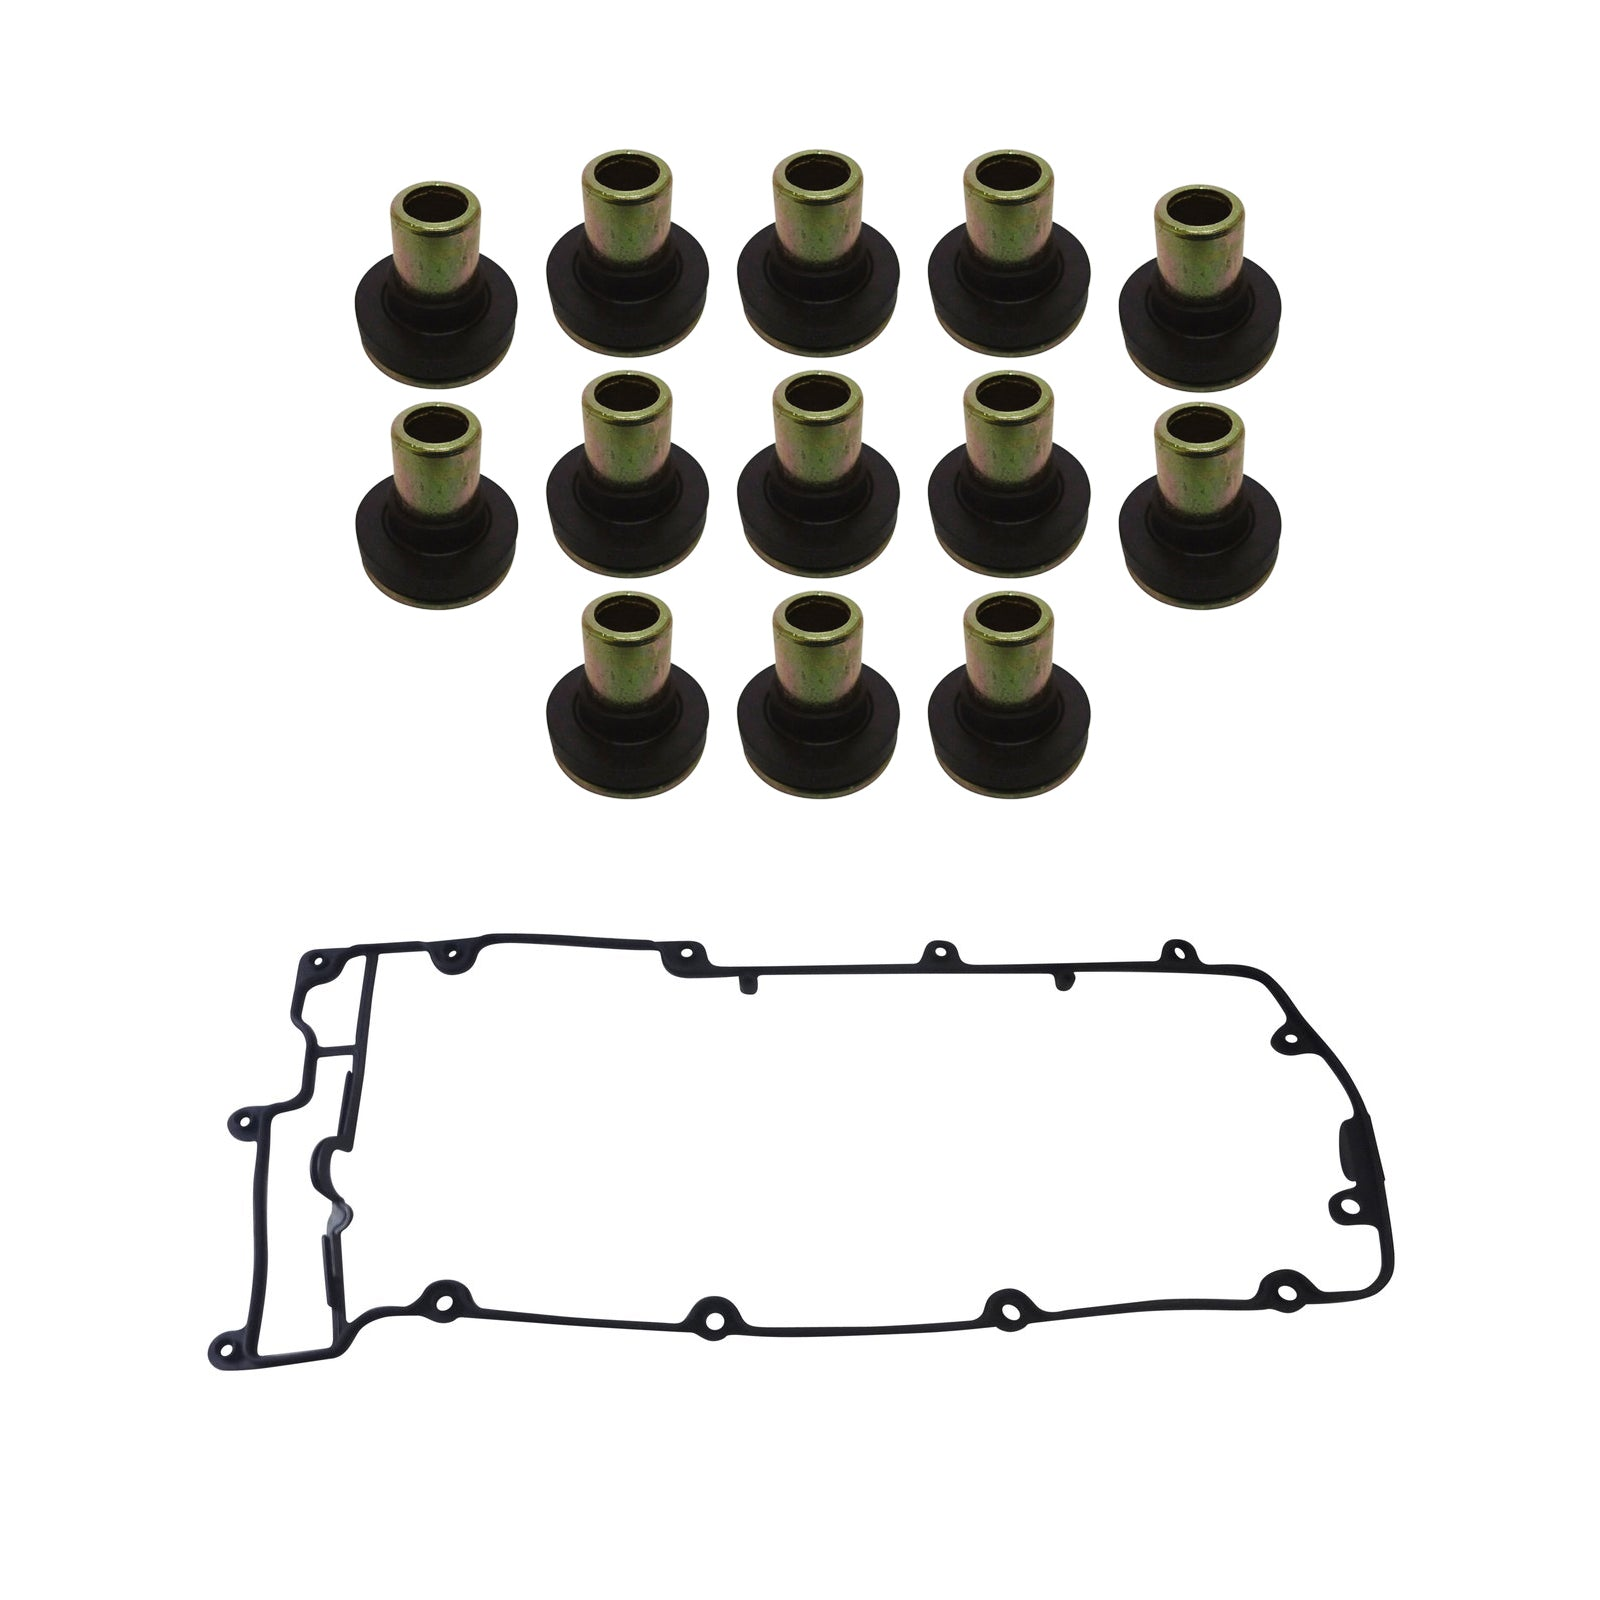 Landrover Discovery 2 TD5 Rocker Cover Gasket Late Bearmach Brand LVP000020